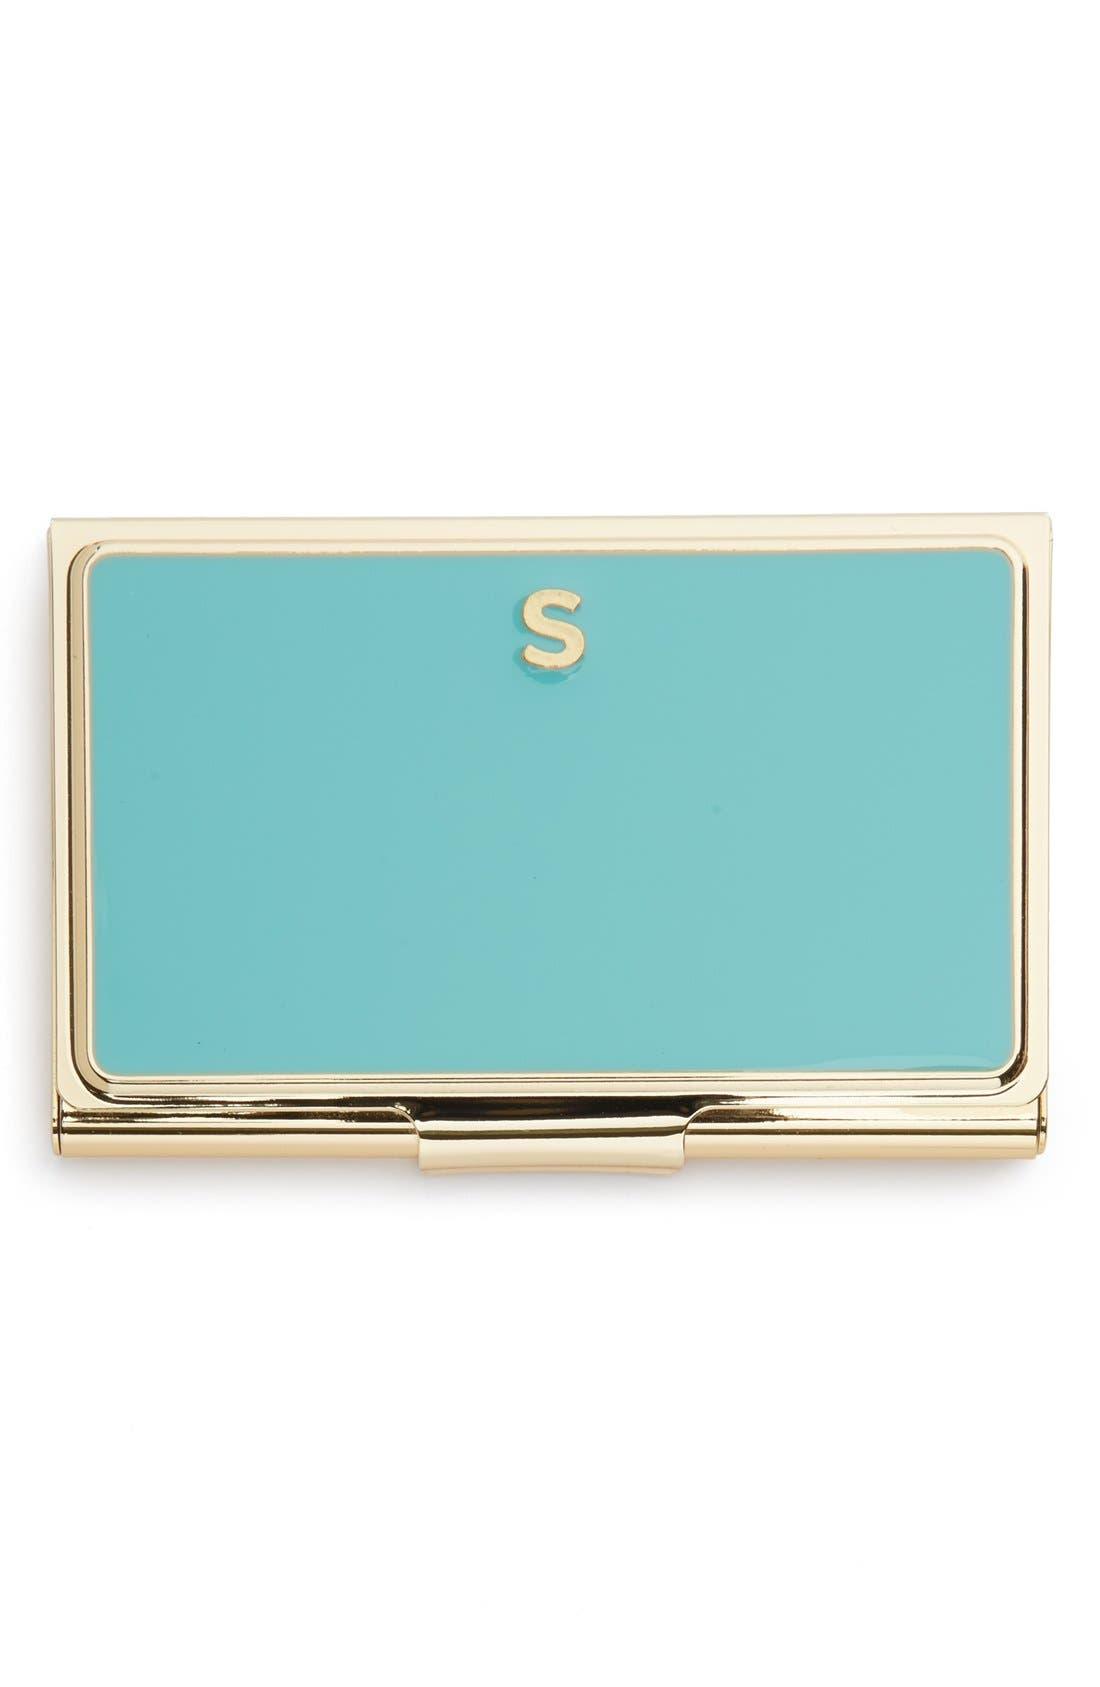 'one in a million' business card holder,                         Main,                         color, S